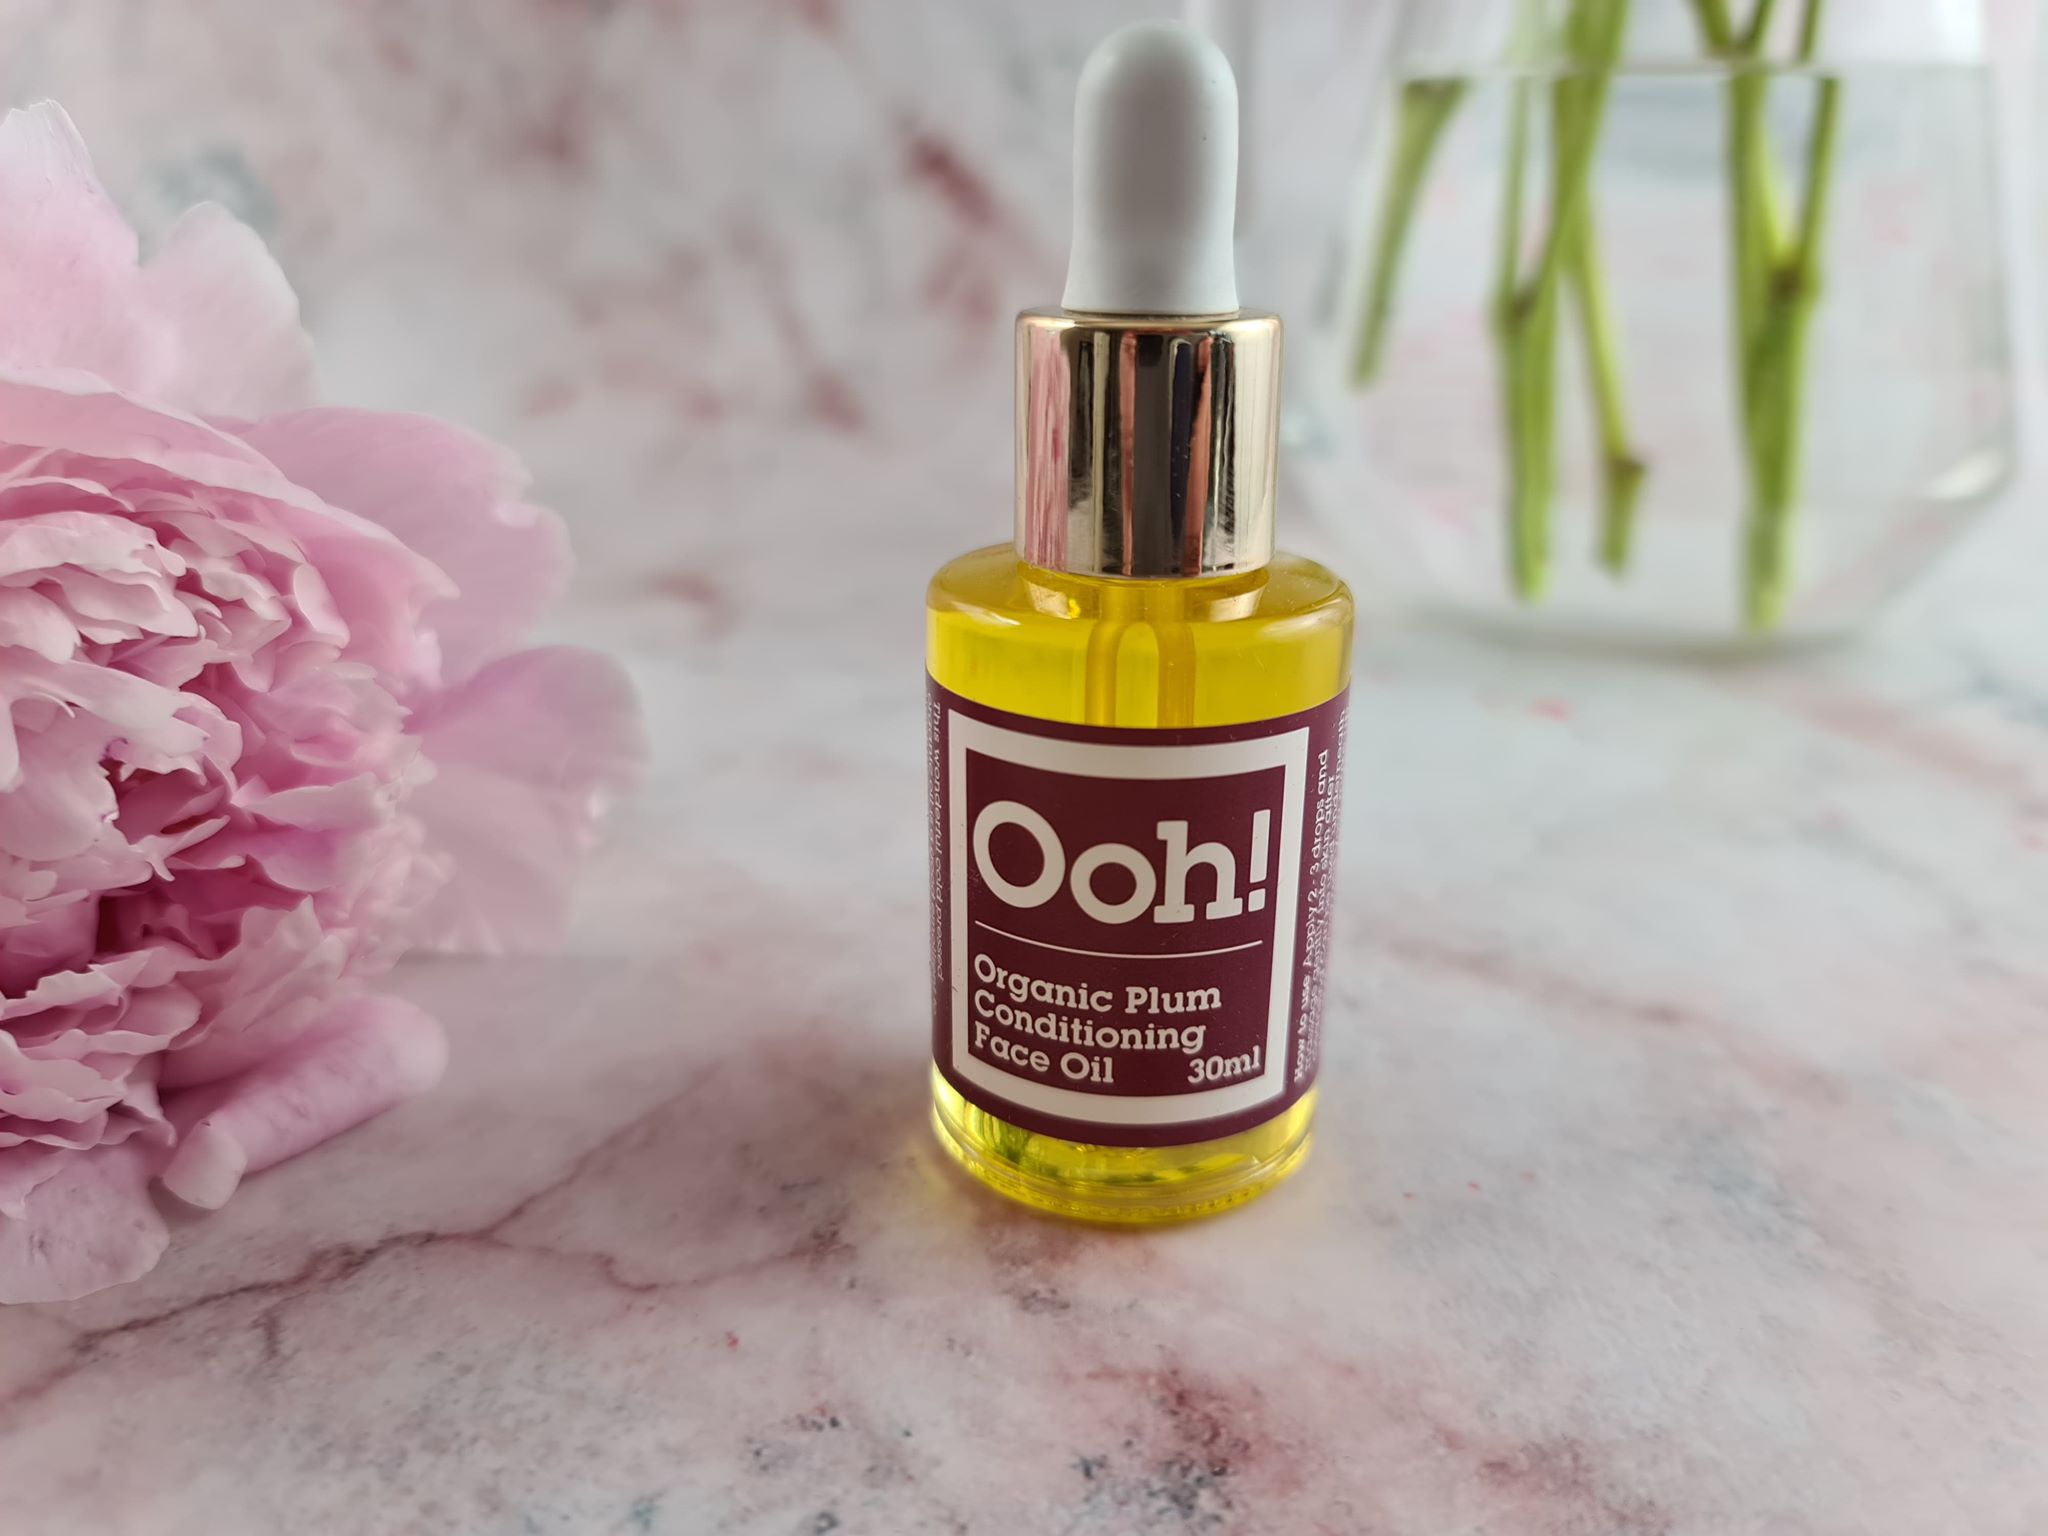 Ooh! - Oils of Heaven Organic Plum Conditioning Face Oil